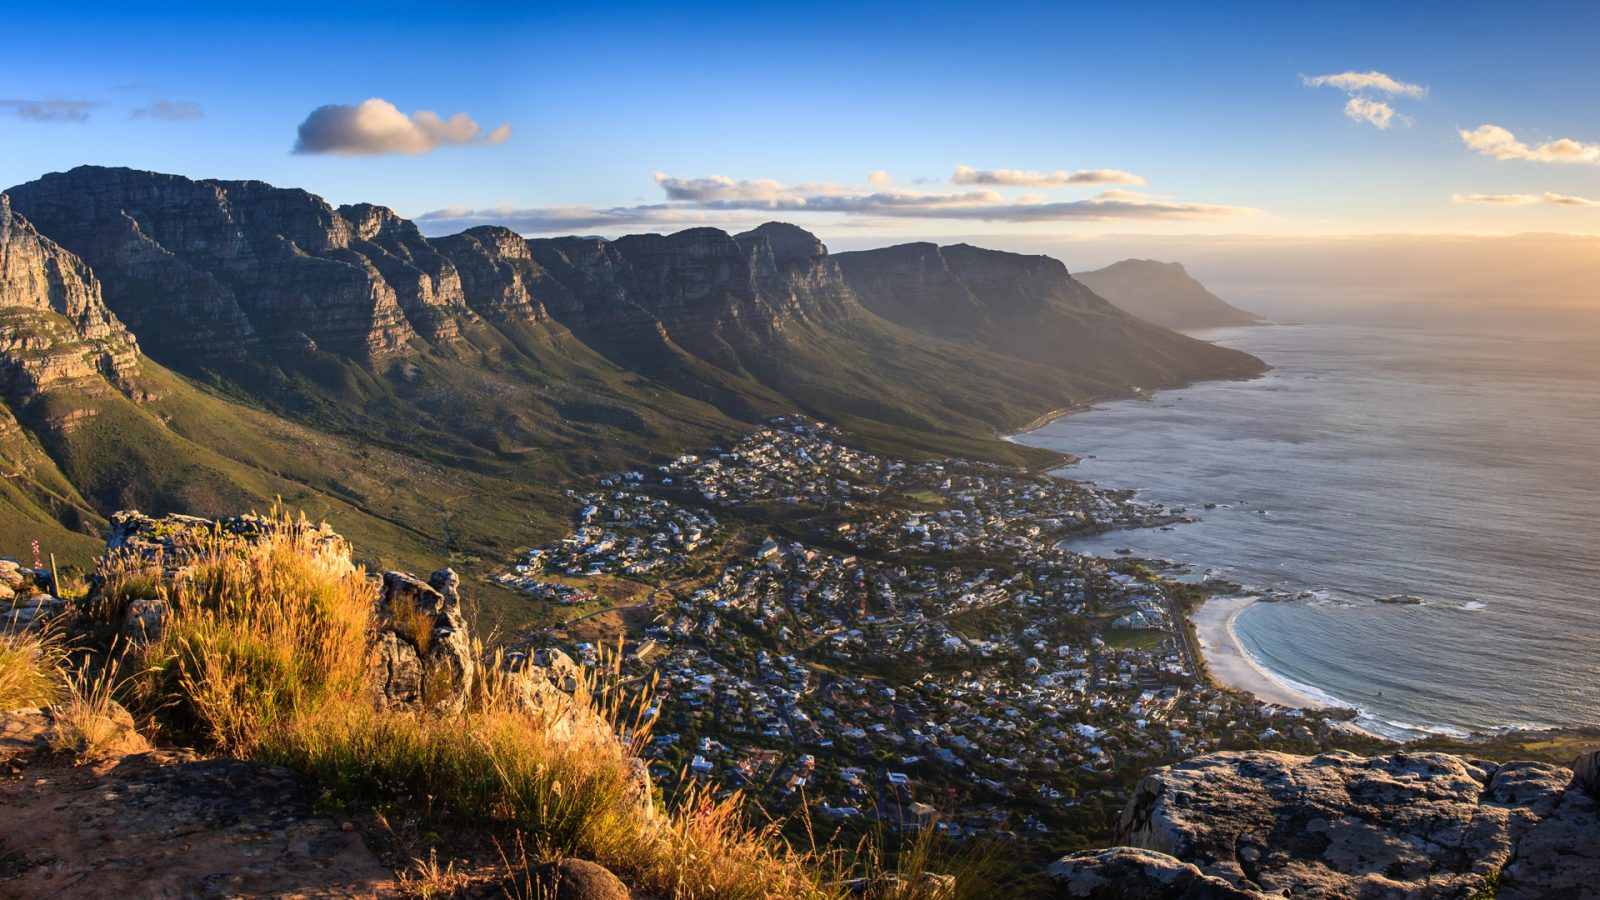 south-africa-cape-town-view-1600x900.jpg